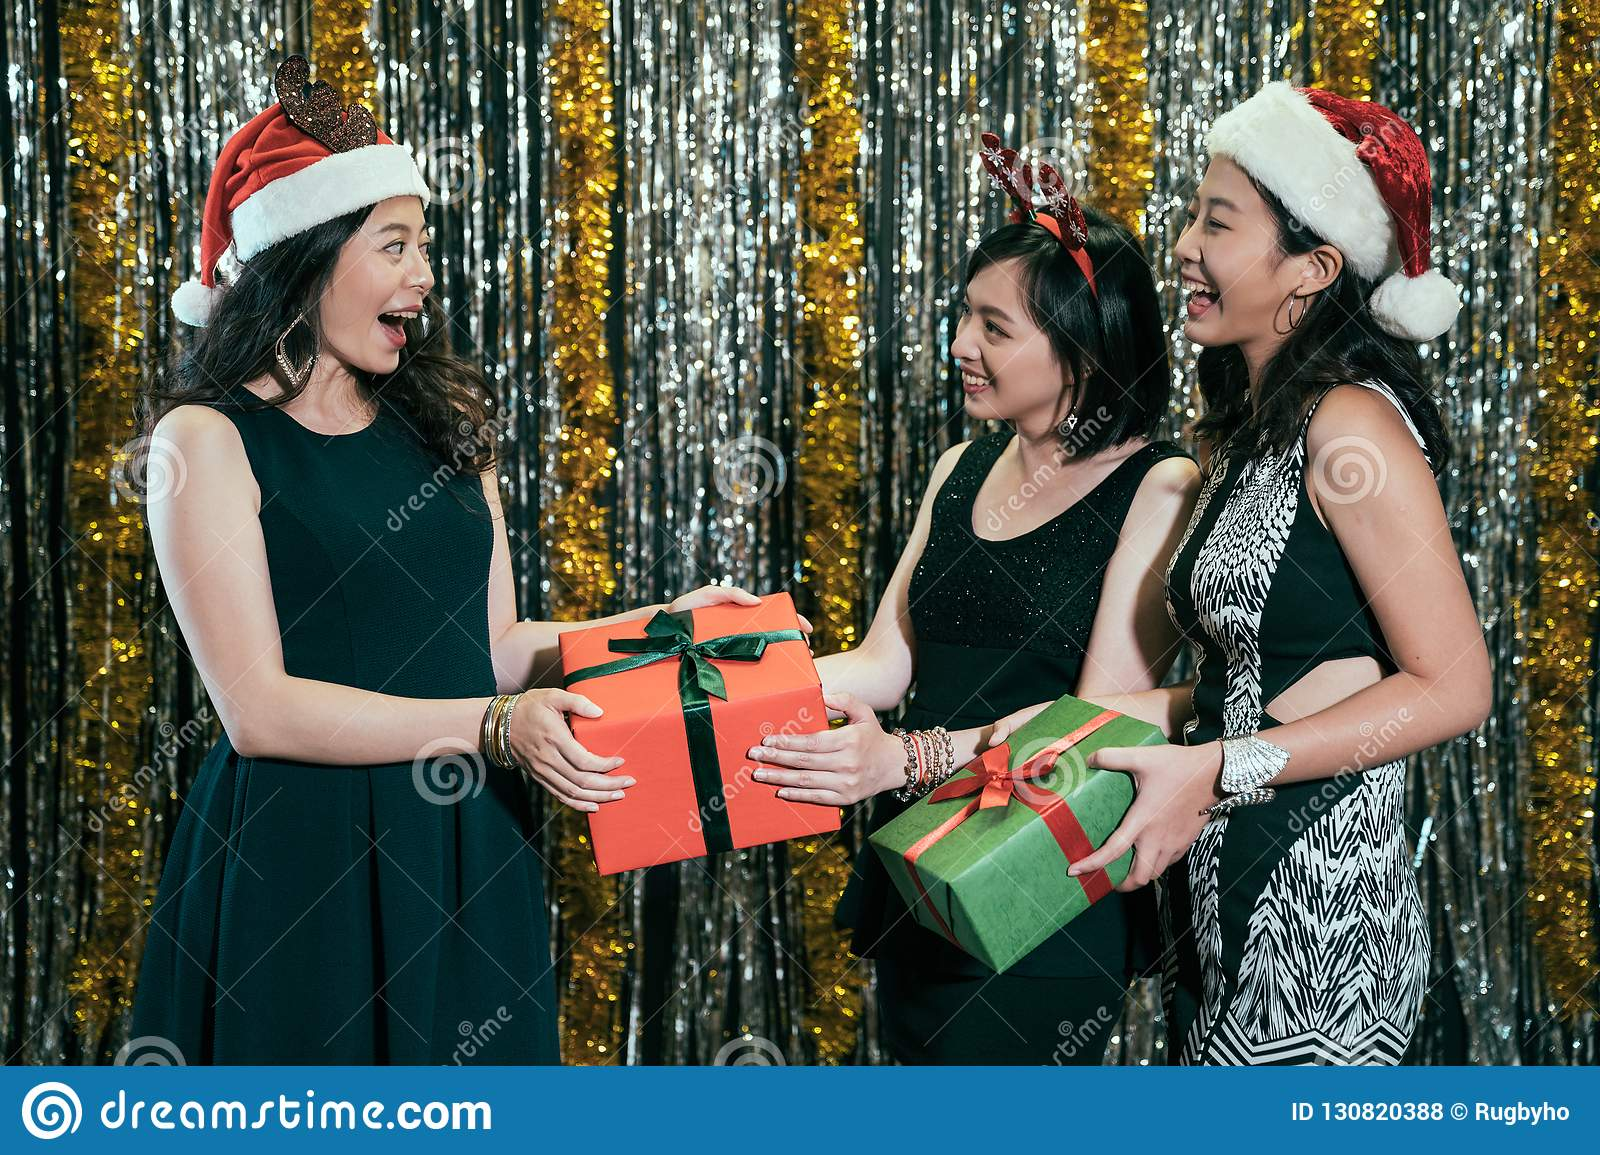 Ladies Christmas Gifts.Ladies With Santa Hats Exchange Christmas Gifts Stock Photo